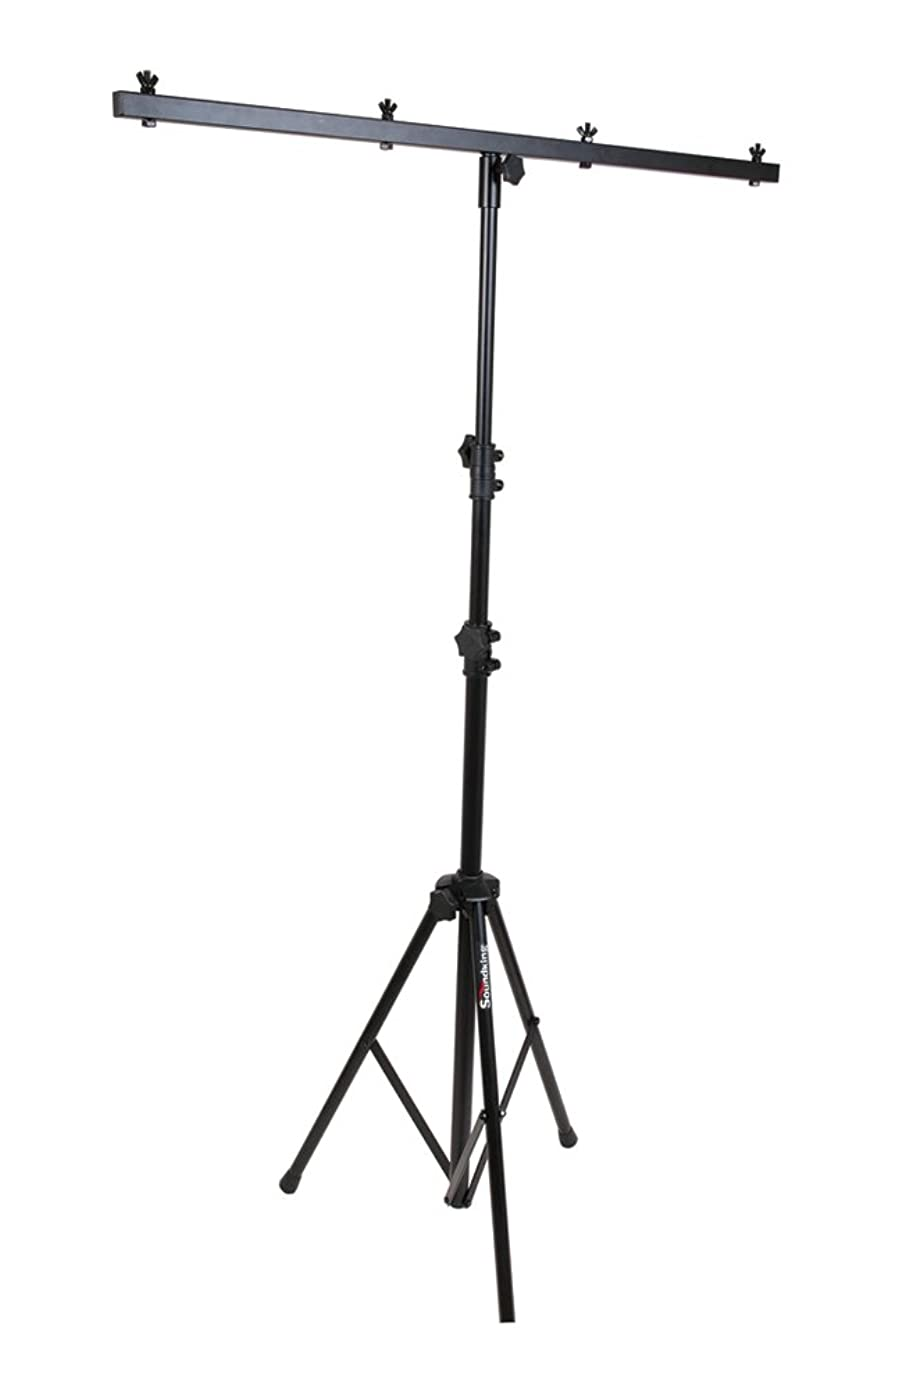 Light Stand, Portable, 50 lb Capacity, Adjustable, Up to Four Lamps